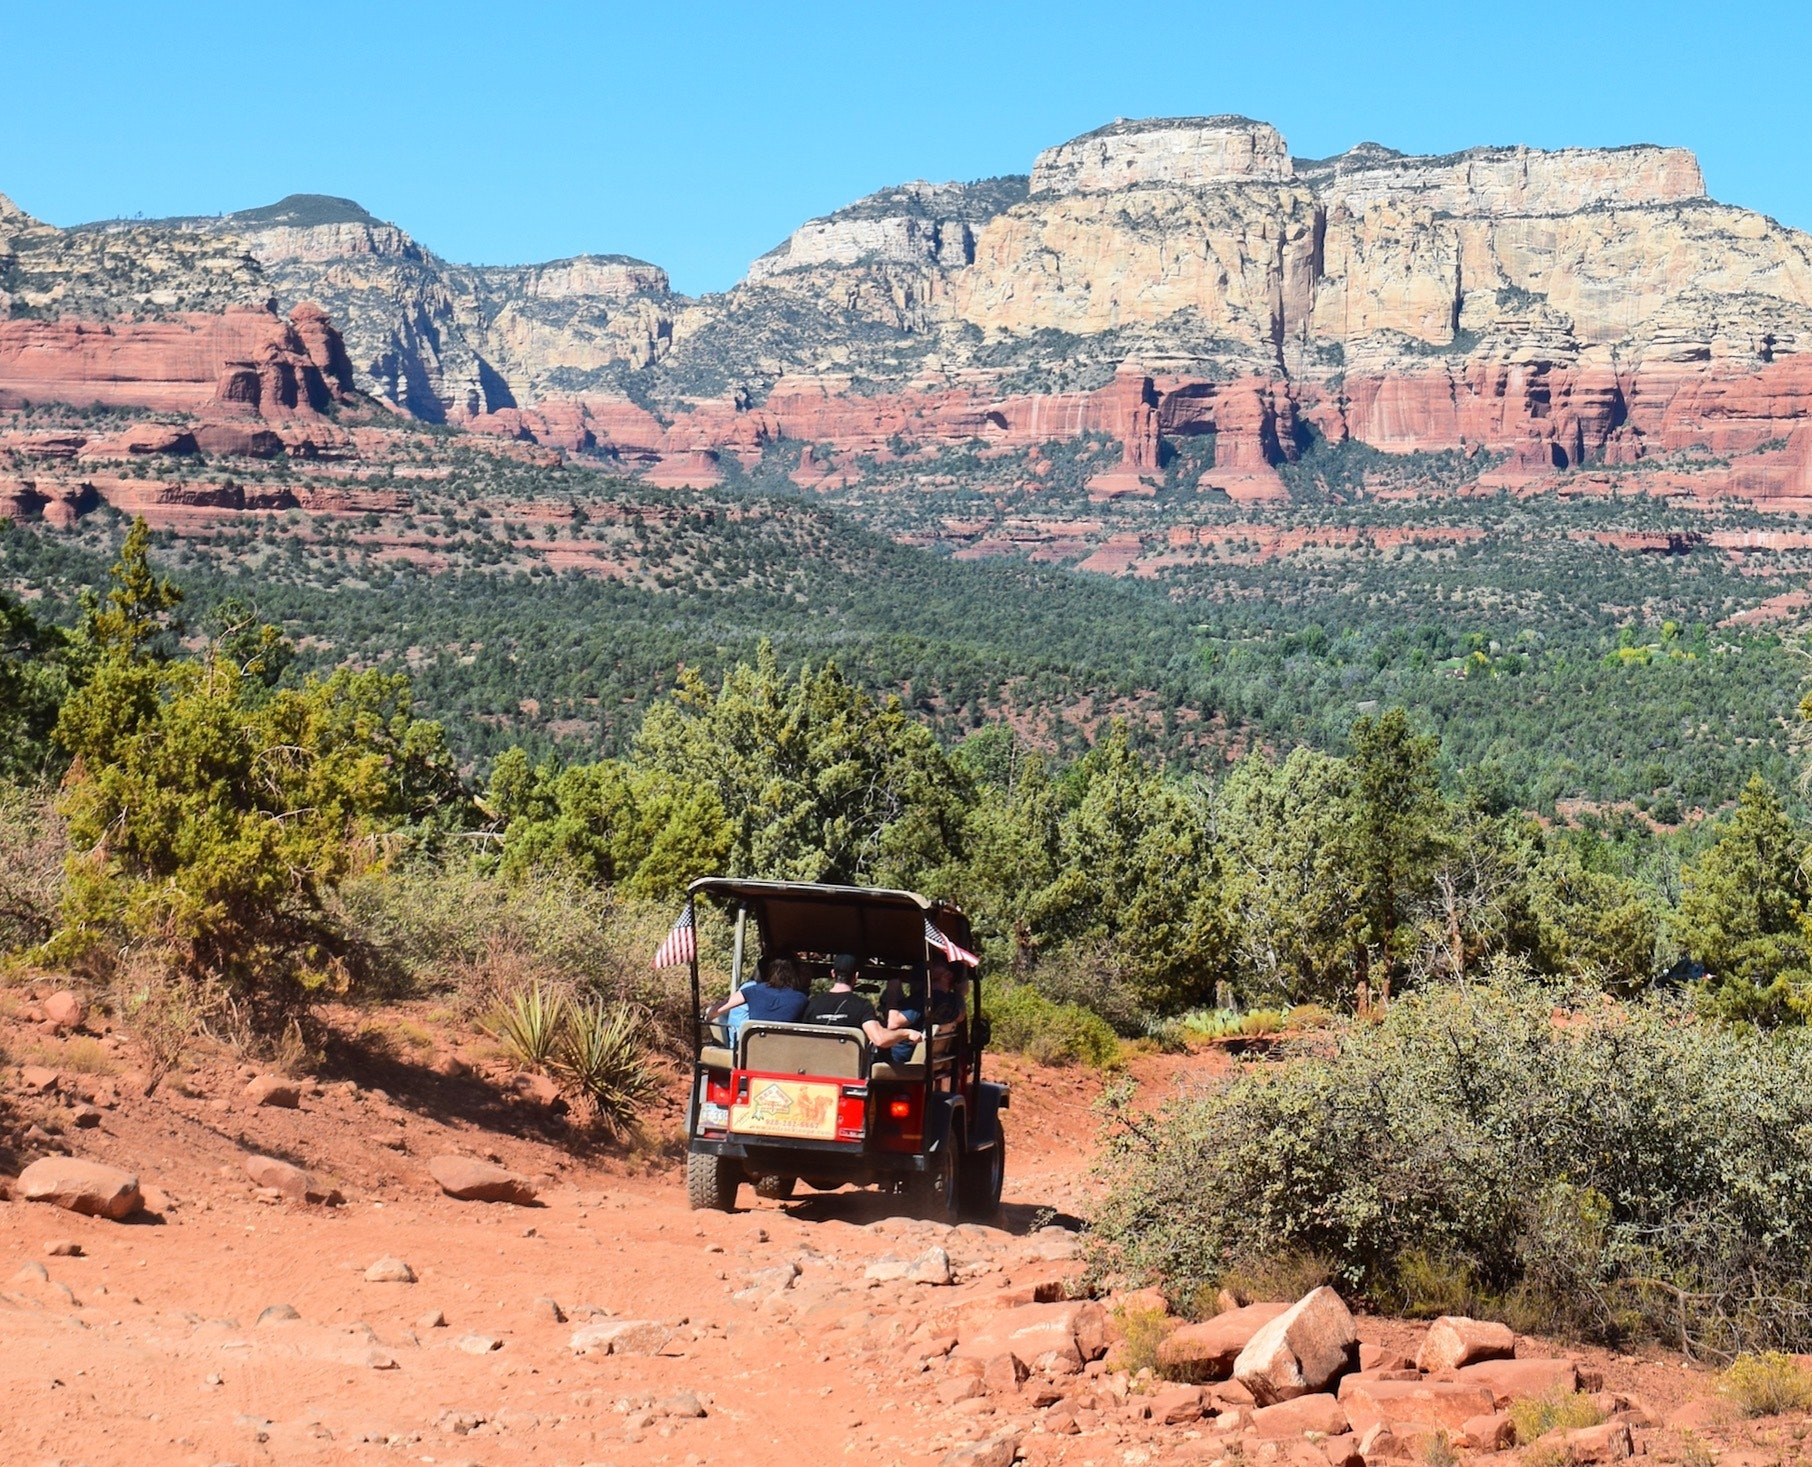 Jeep Tour In Sedona Sedona Arizona United States